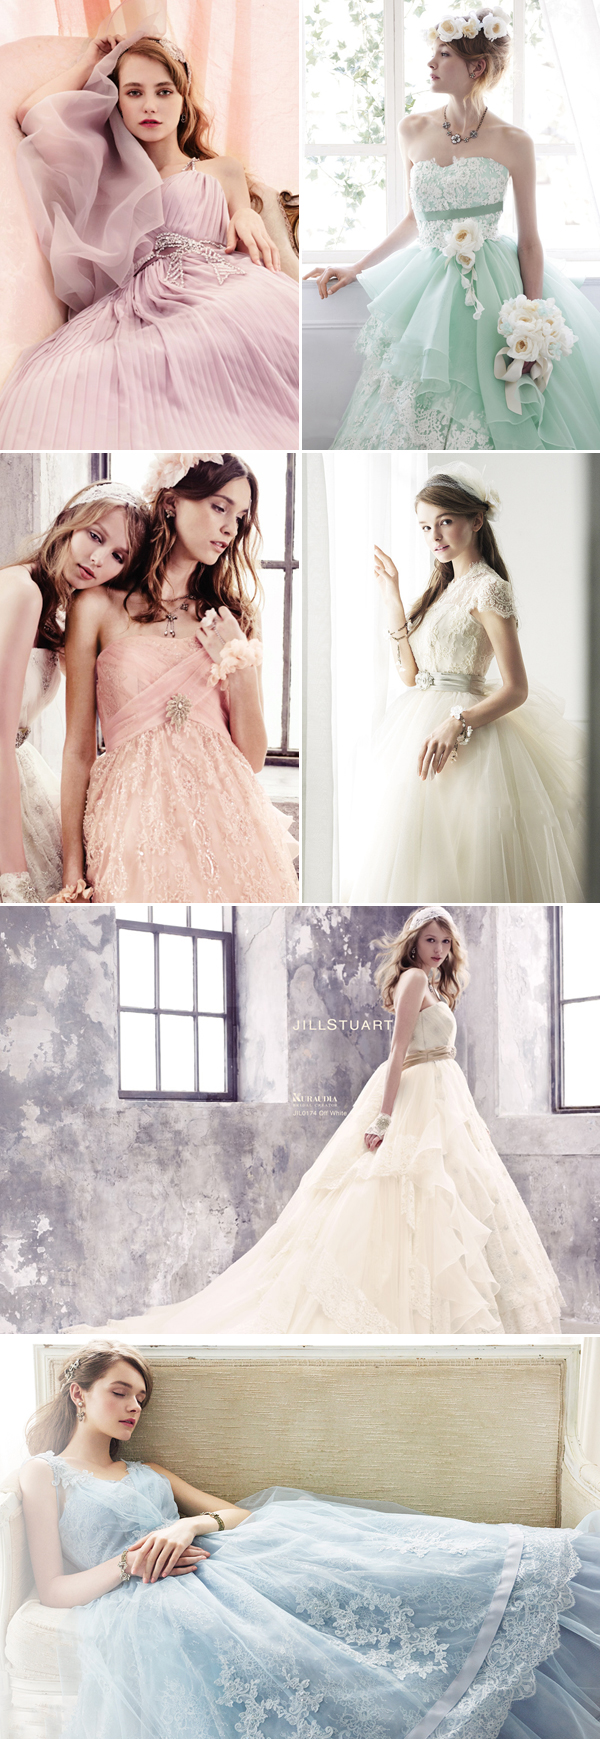 Princess-Worthy Dreams! Top 10 Japanese Wedding Dress Brands We Love ...